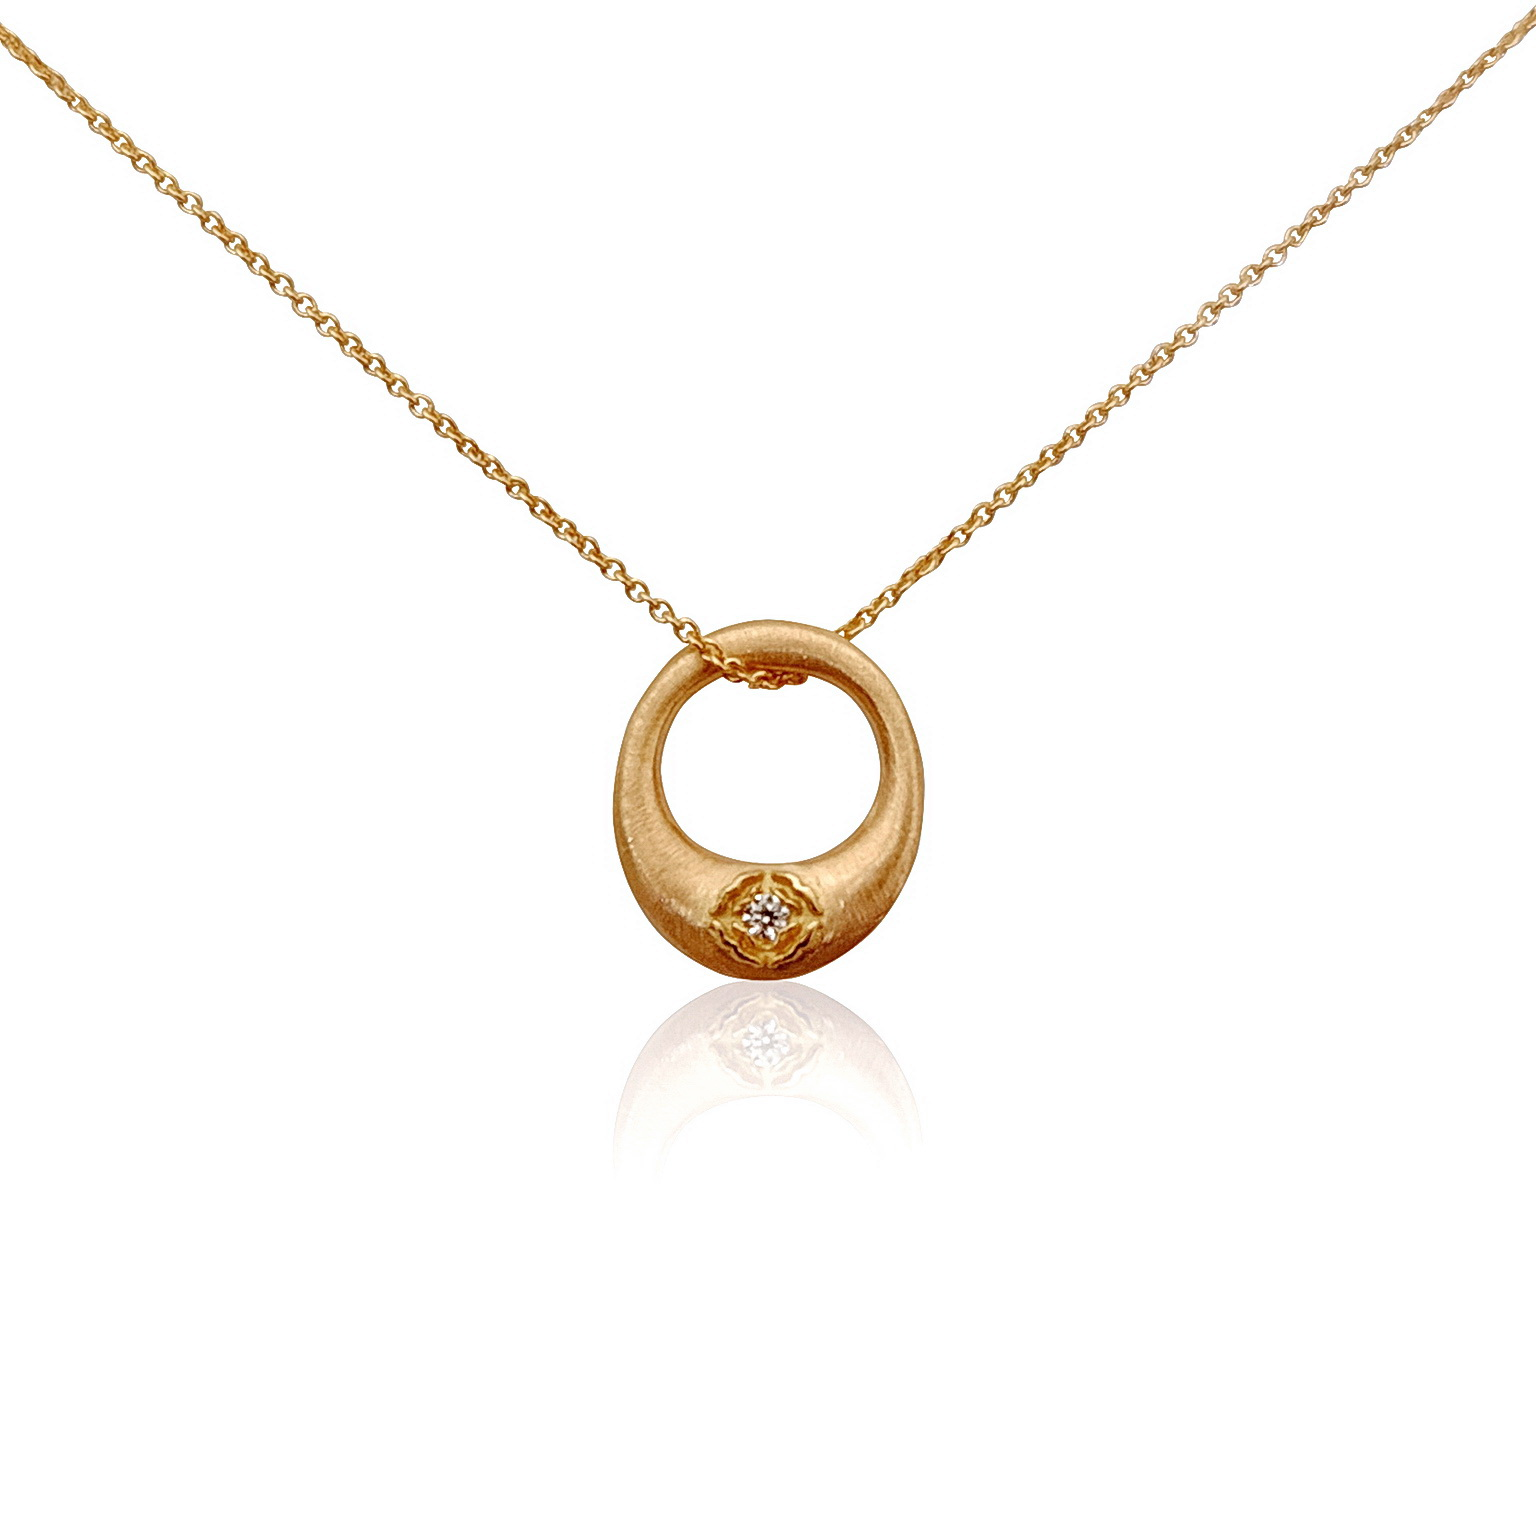 'Little Luca' 18 Carat Rose Gold and Diamond Necklace